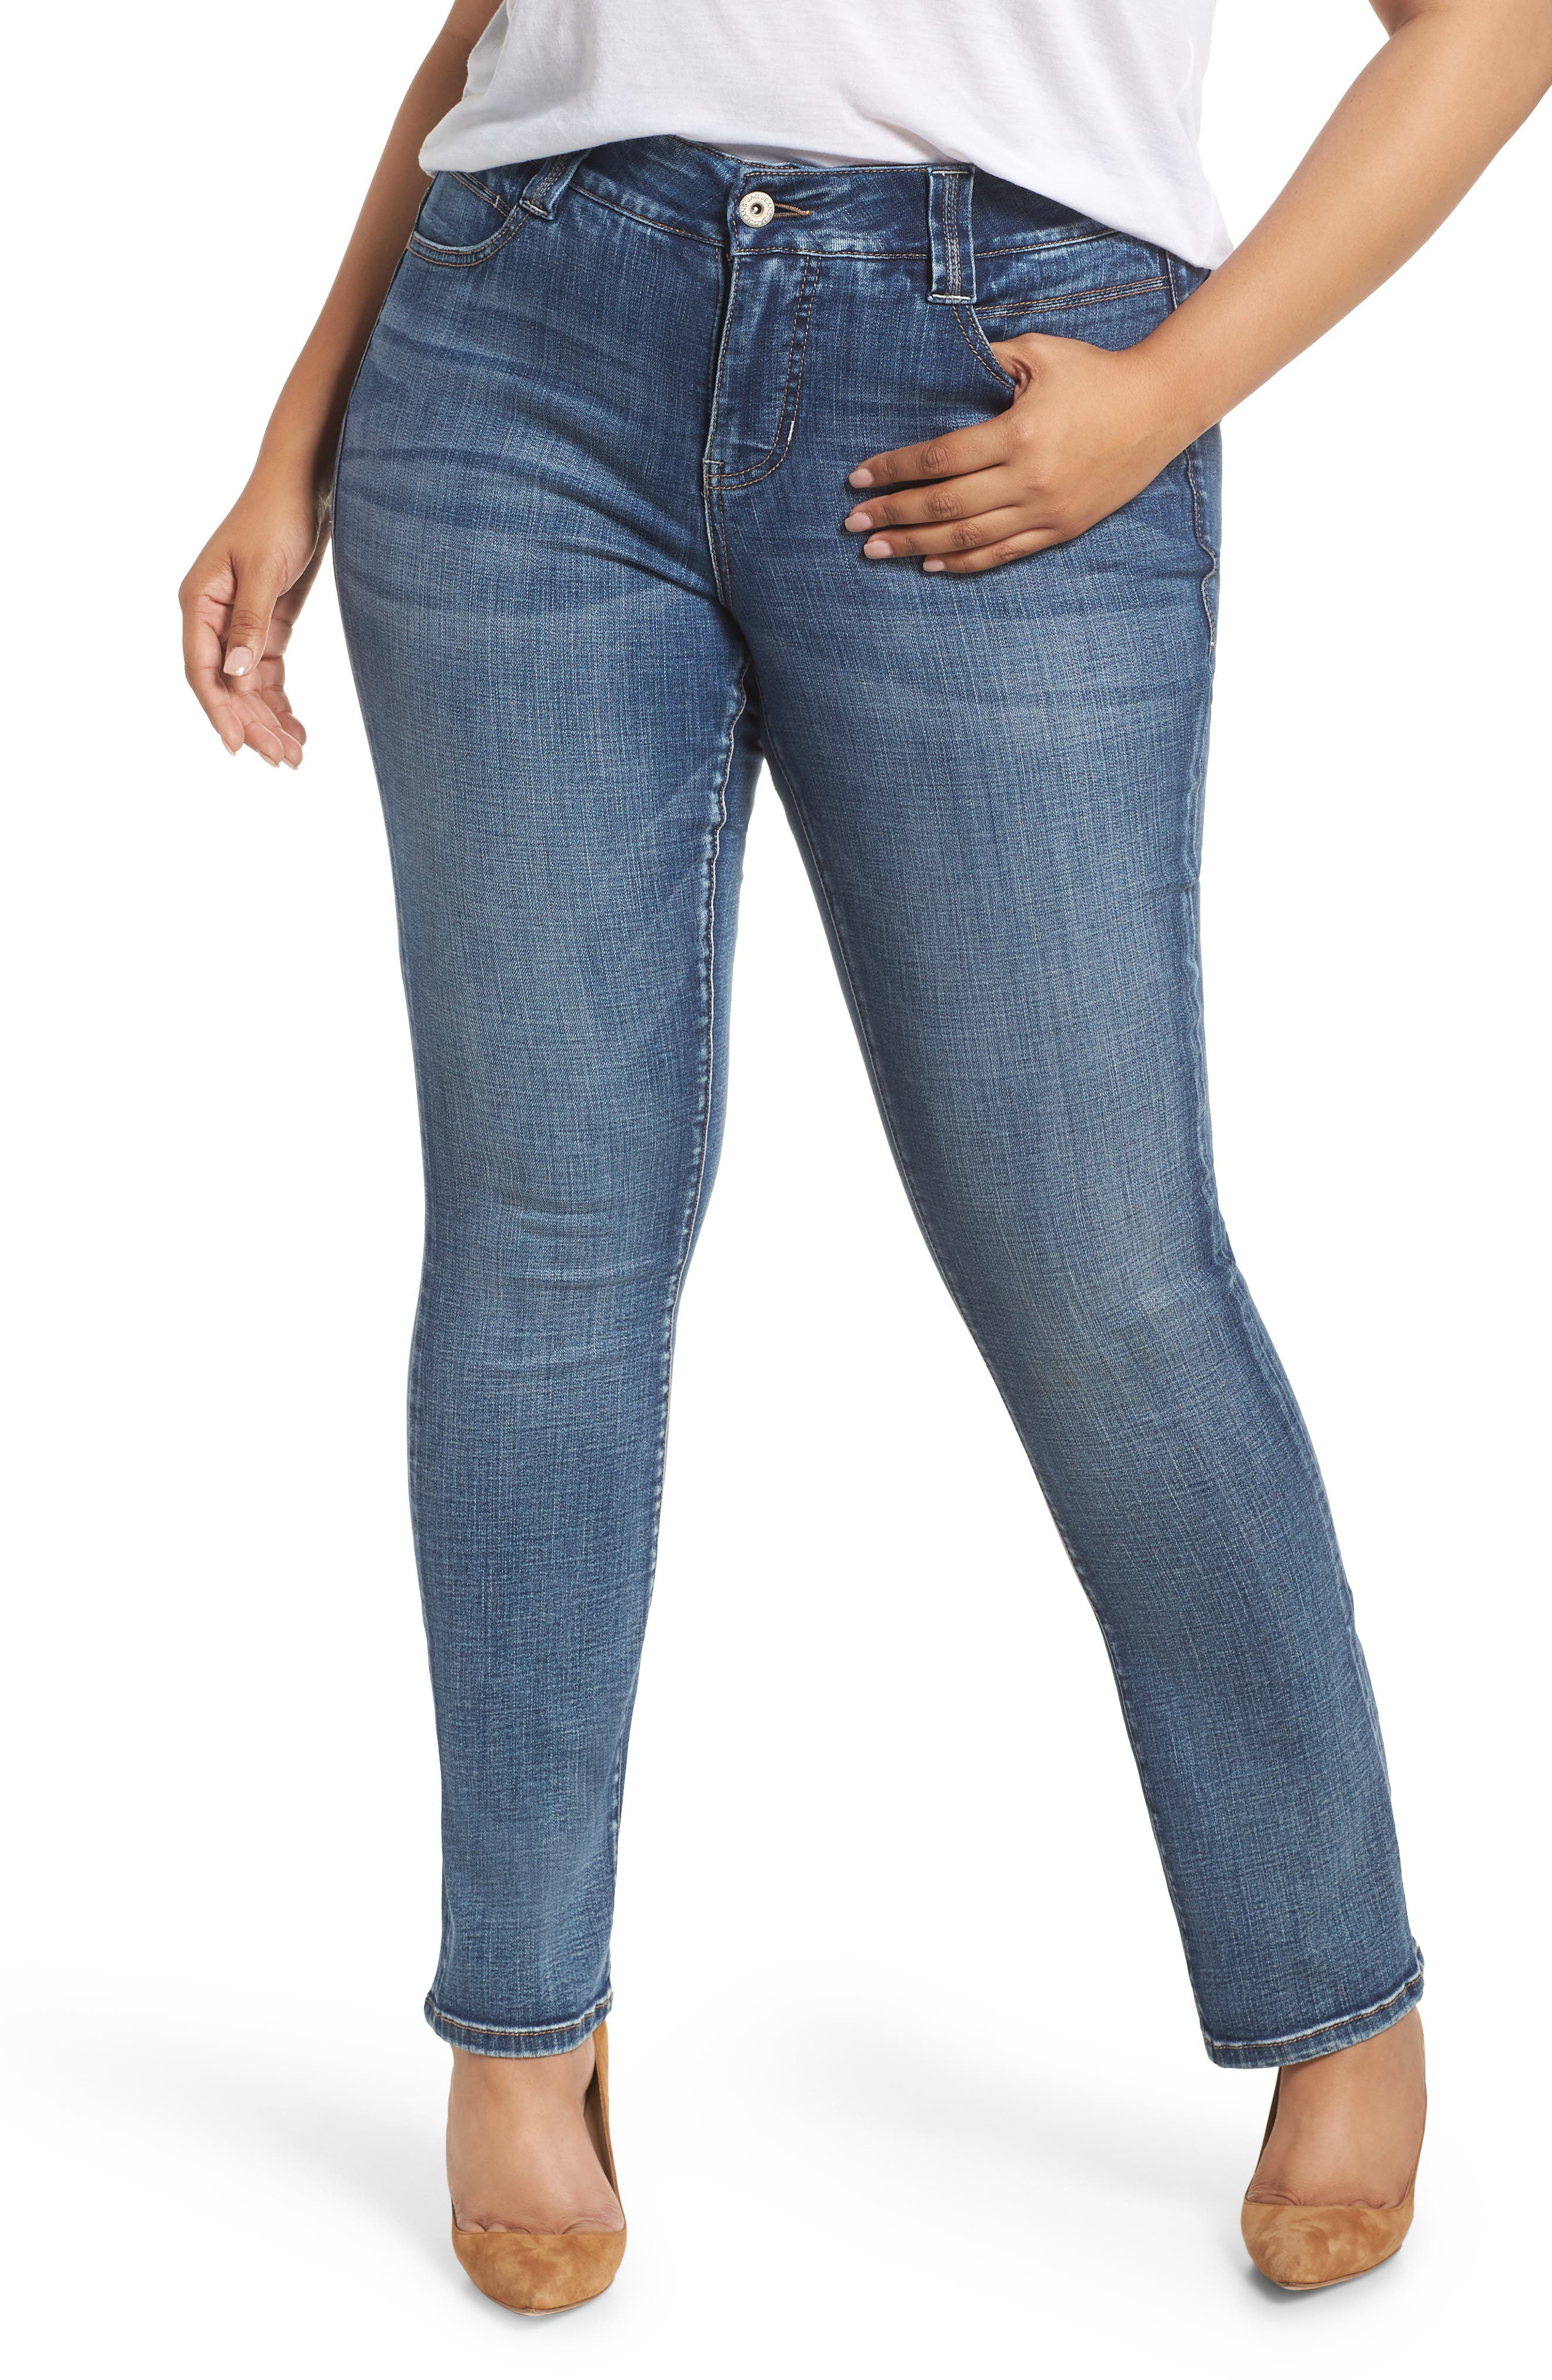 JAG JEANS, Eloise Bootcut Stretch Jeans, Main thumbnail 1, color, MED INDIGO